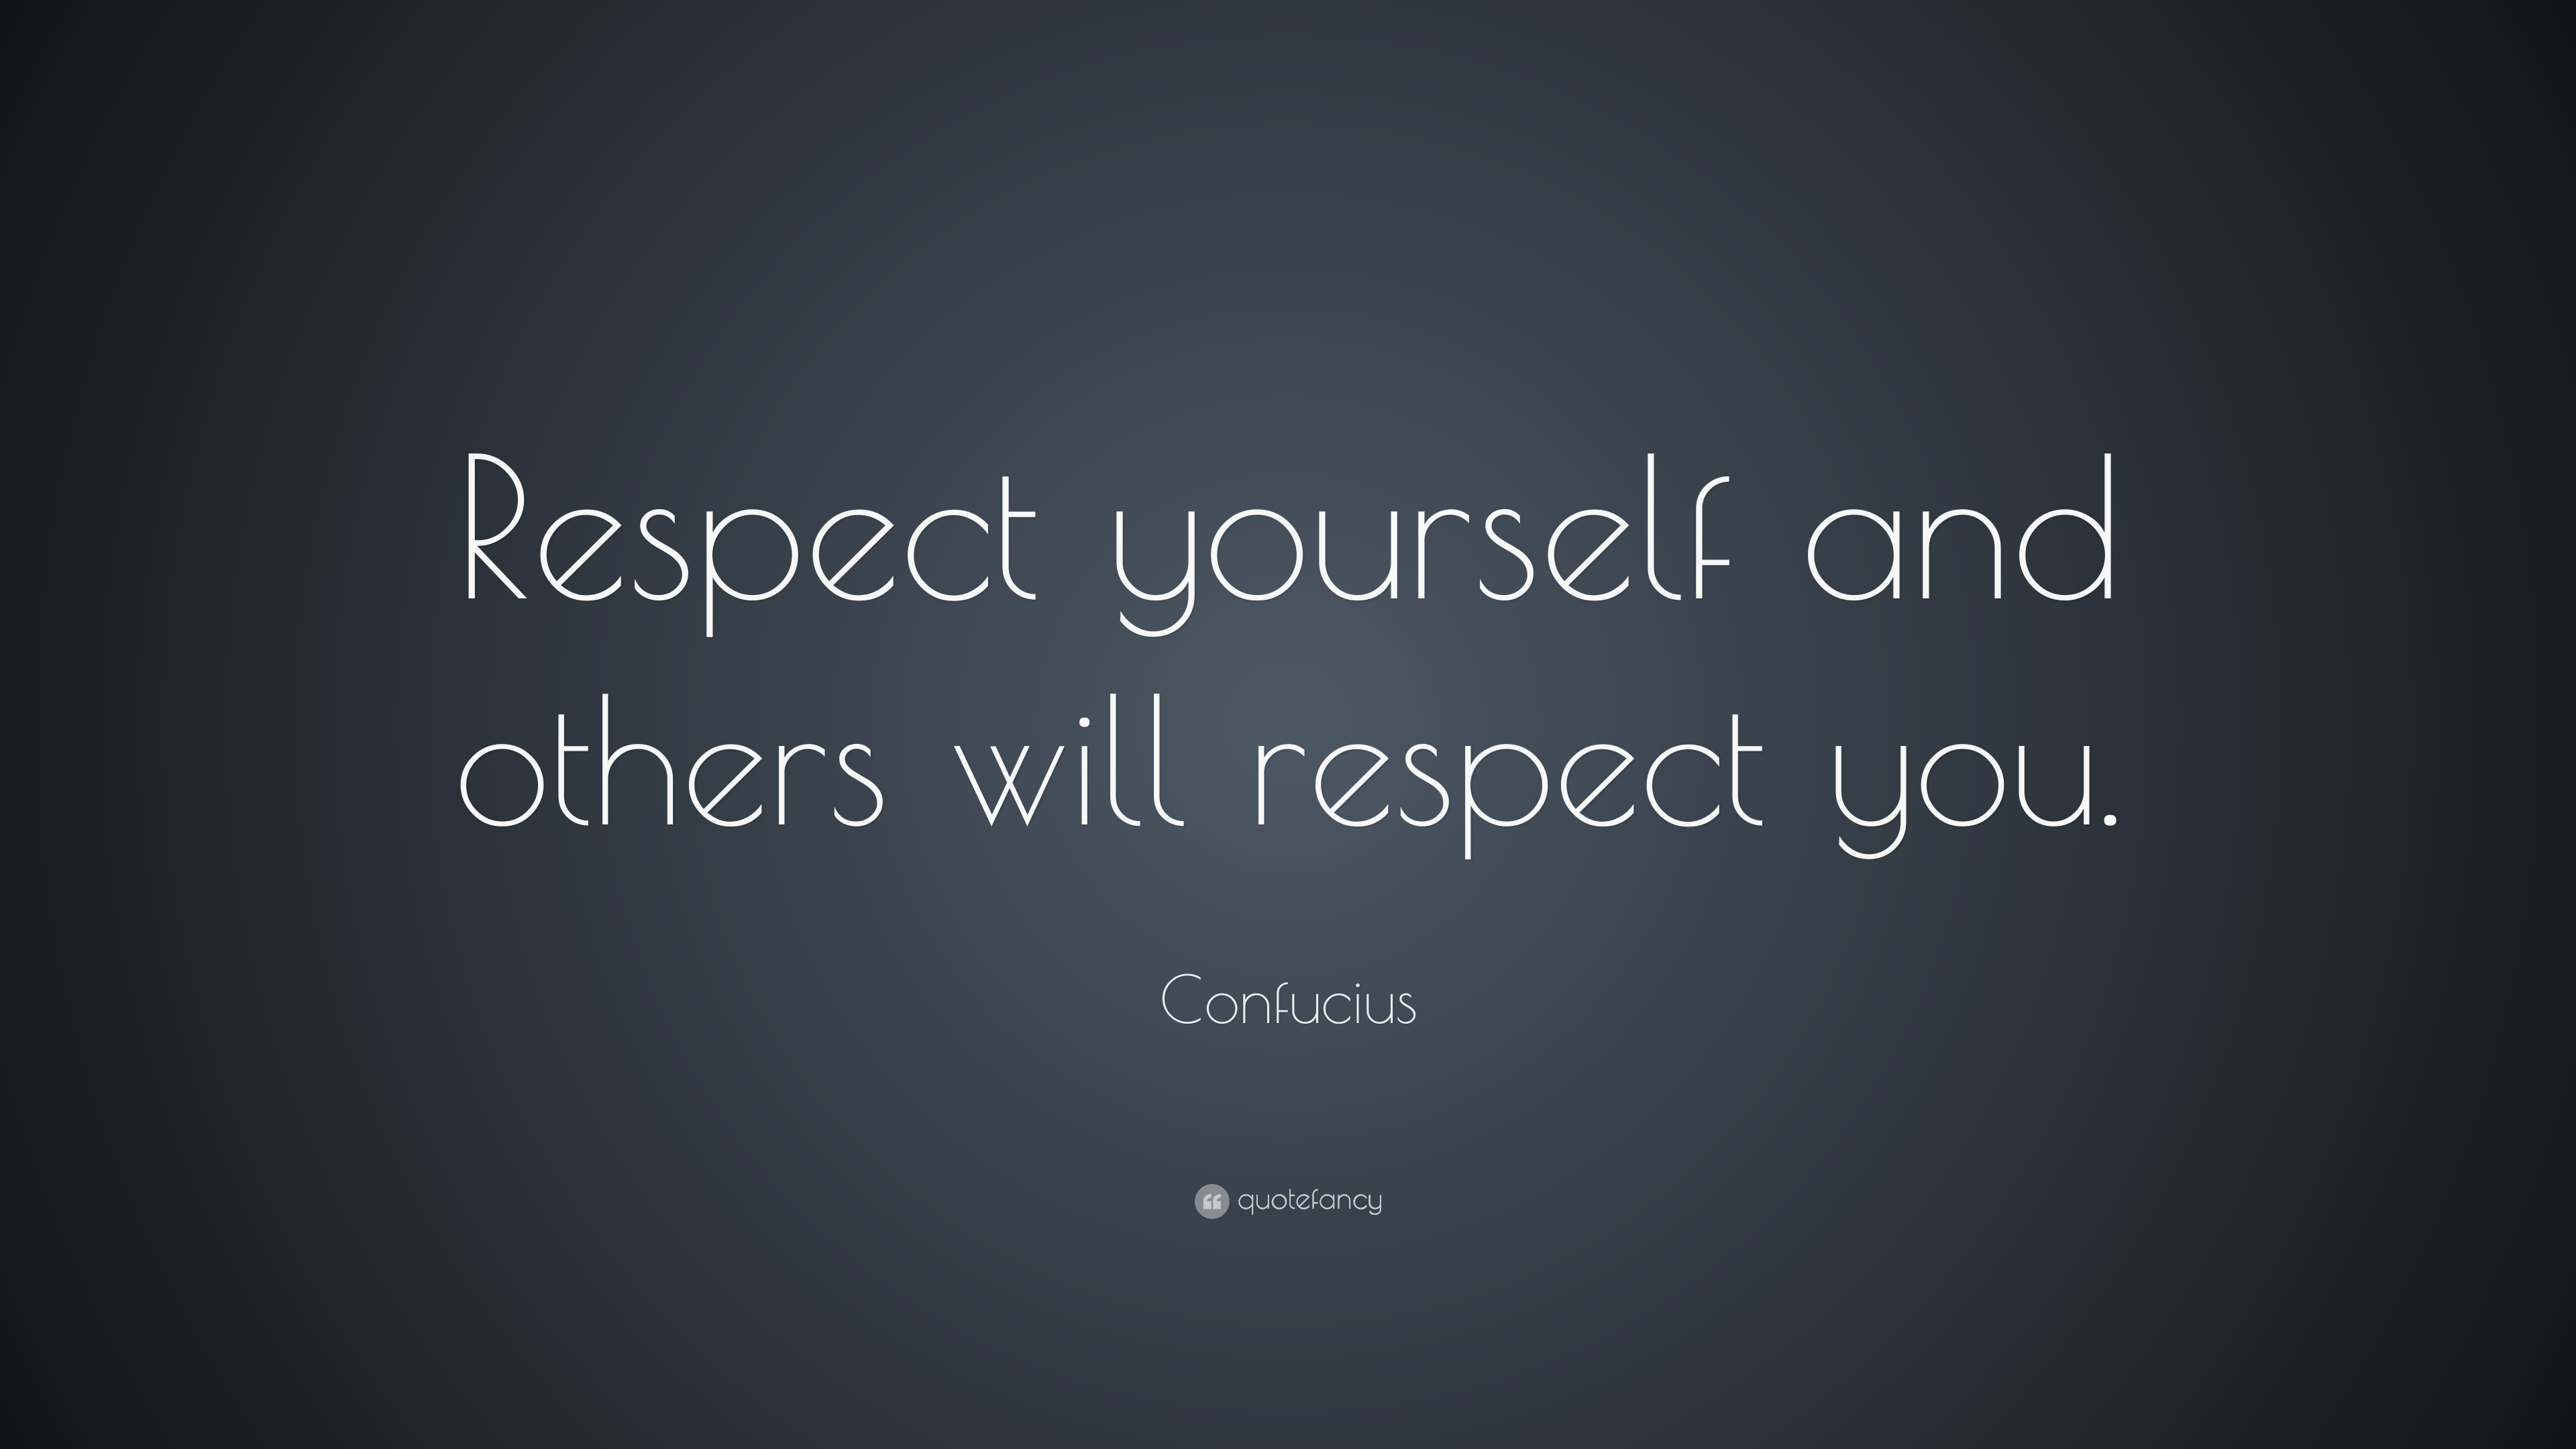 Self Respect Quotes Cool Self Esteem Quotes 40 Wallpapers  Quotefancy